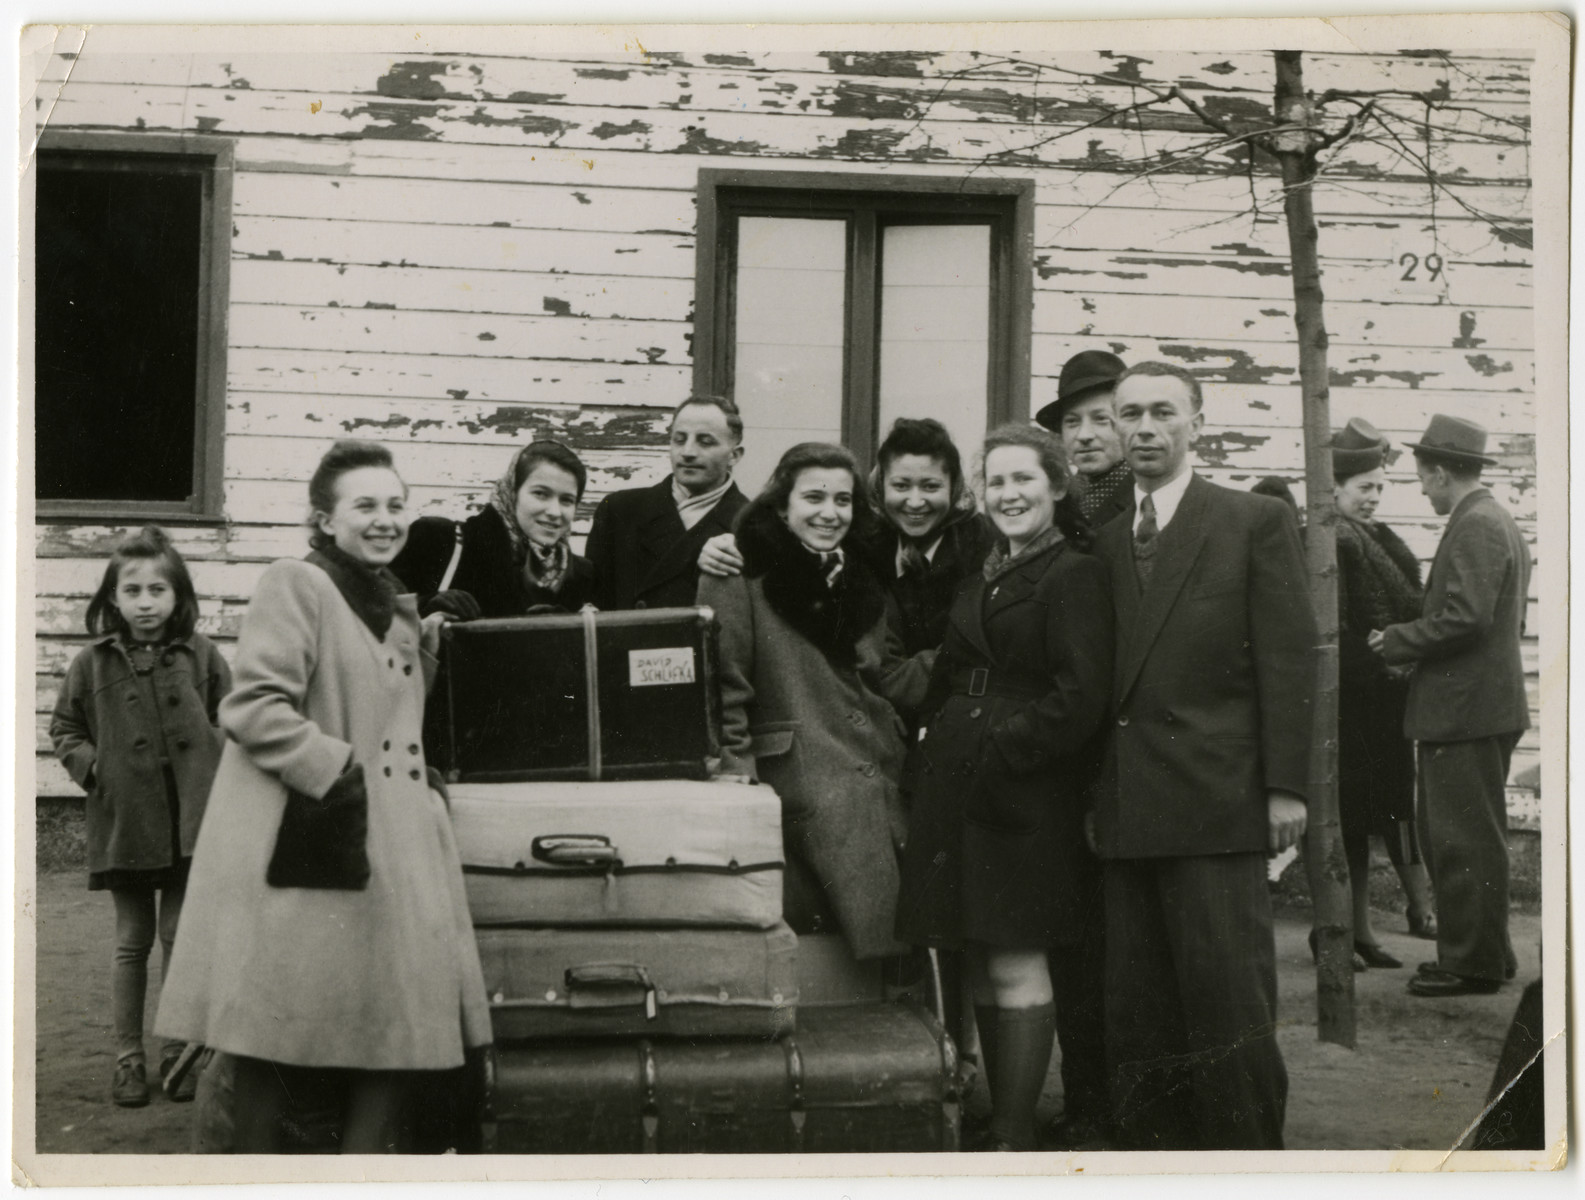 Residents of the Schlachtensee displaced persons' camp bid farewell to the Rothbaums who are leaving for America.  Pictured are Lusia, Genia and Chajka Rothbaum as well as Laura Kimmel (fourth from right) and Alfred Kimmel (second from right).